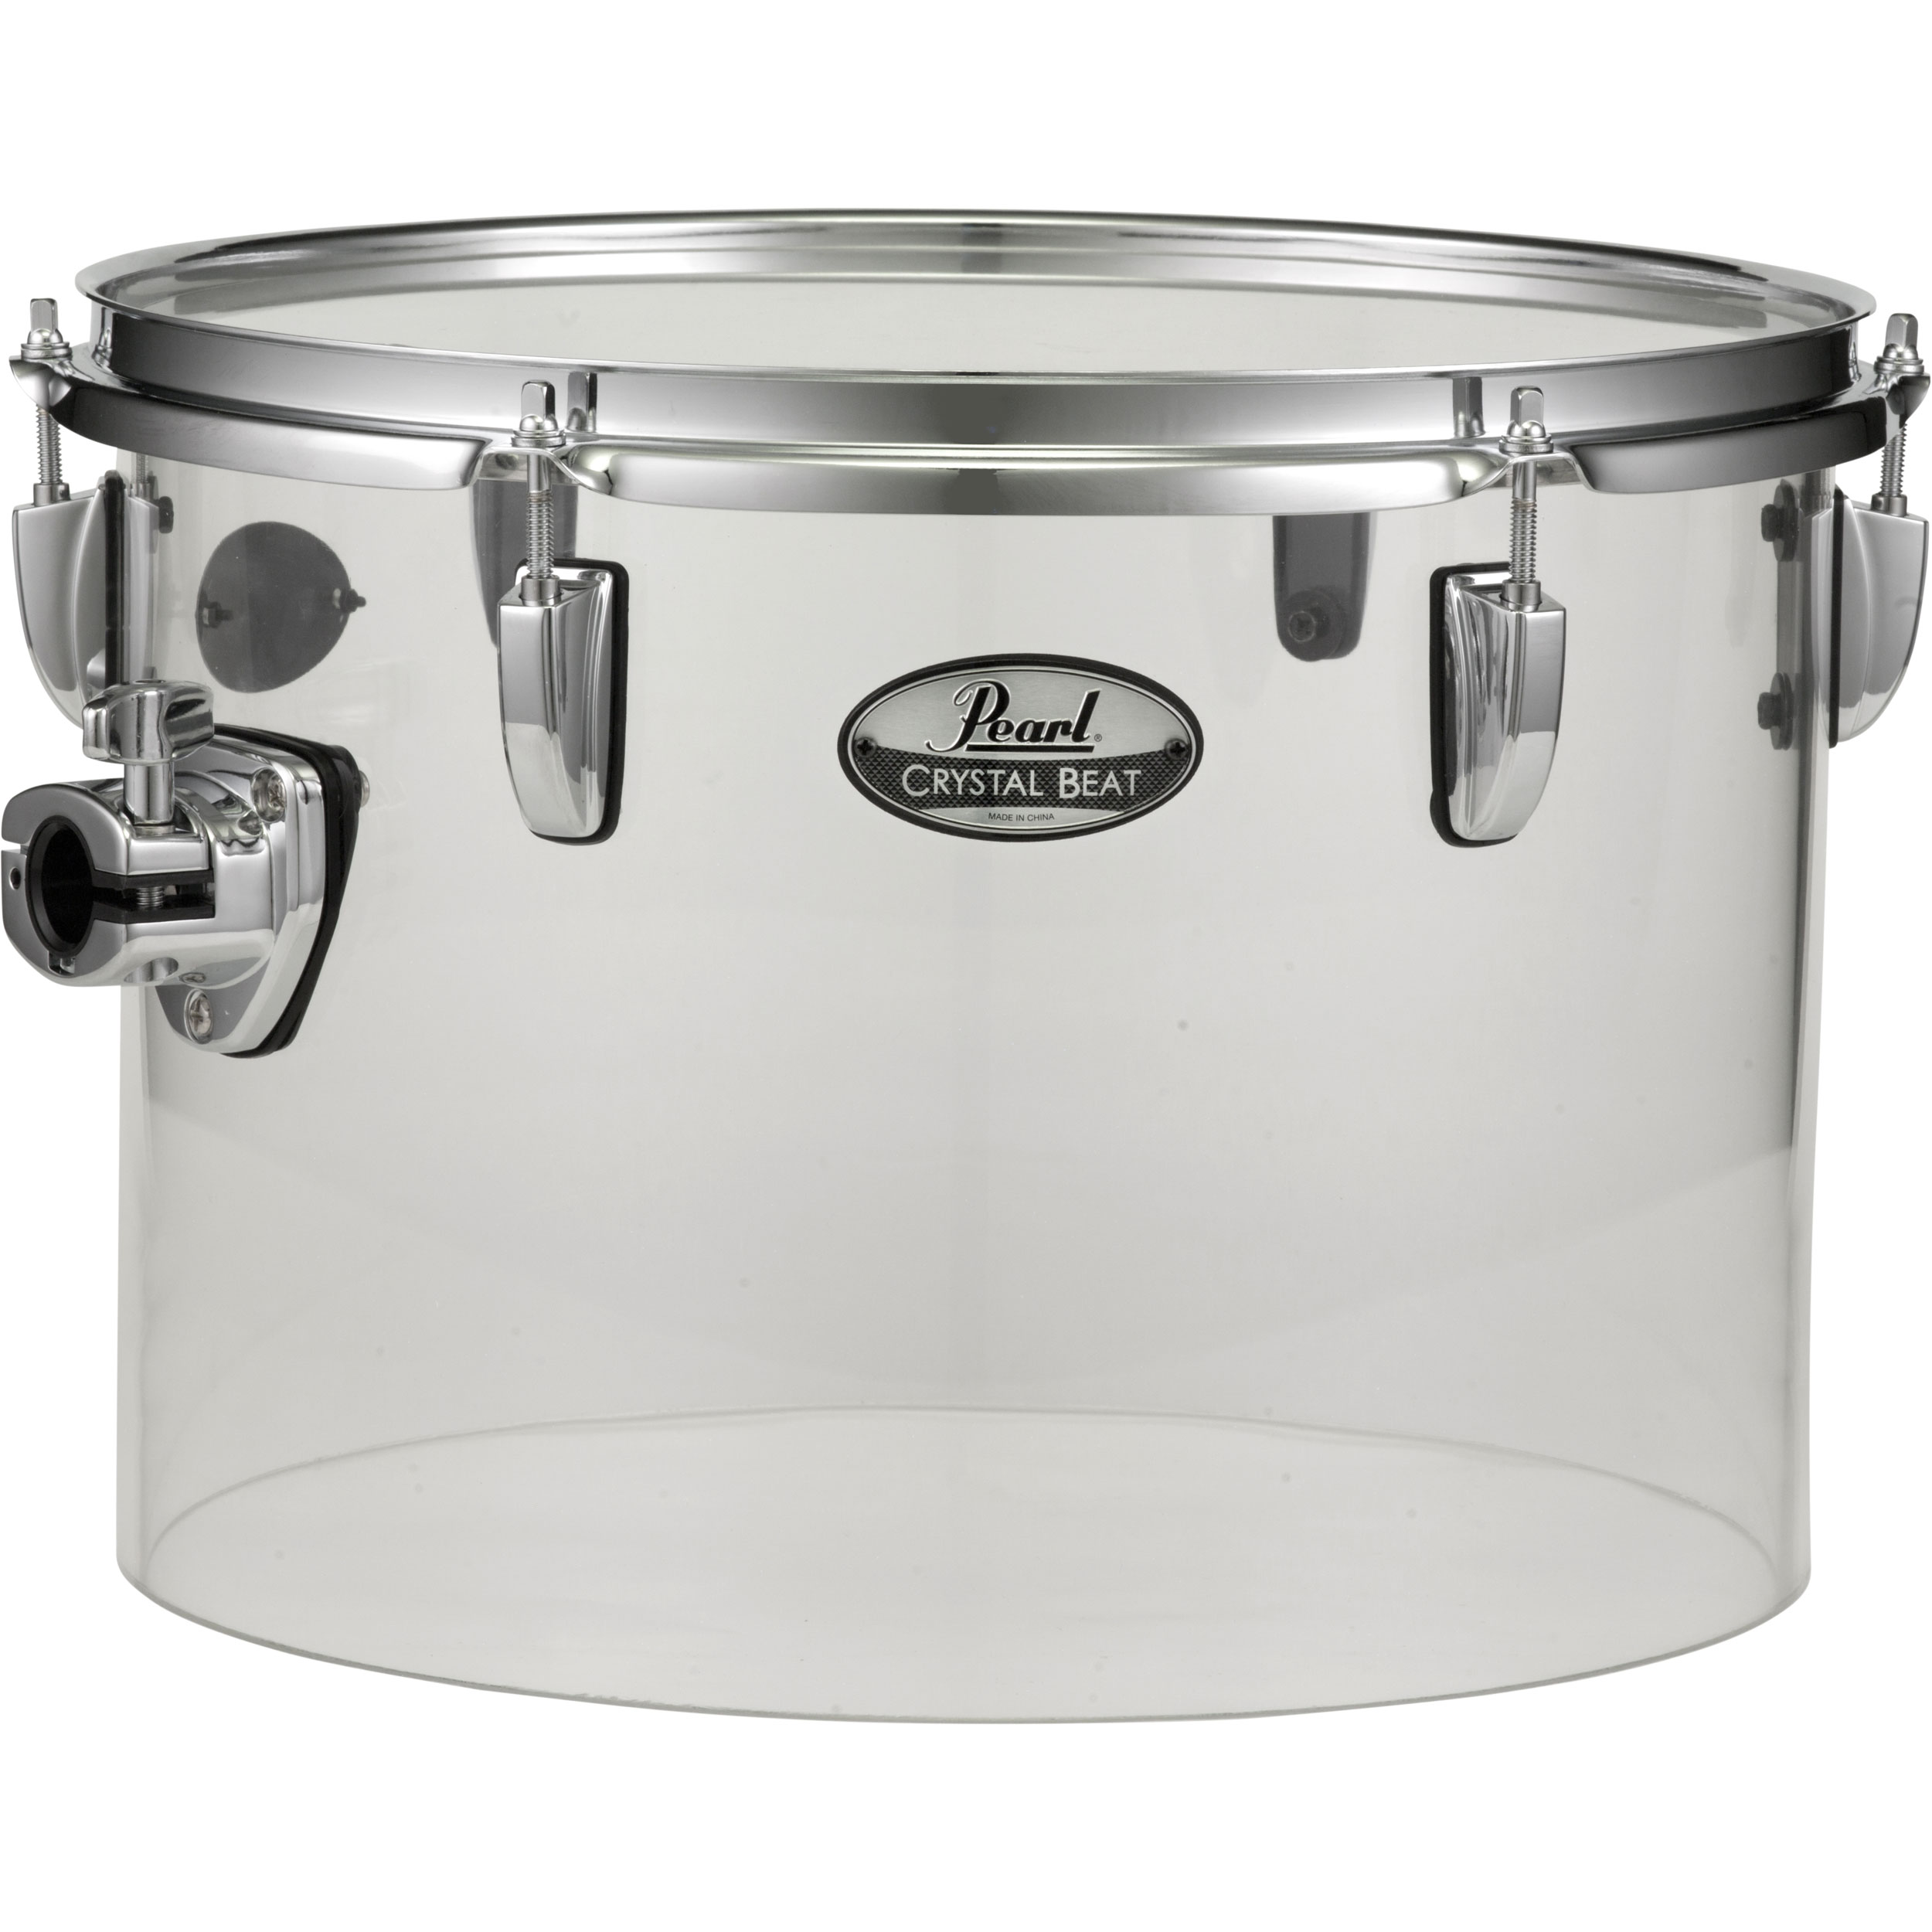 "Pearl 13"" (Diameter) x 9"" (Deep) Crystal Beat Single-Headed Concert Tom in Ultra Clear"